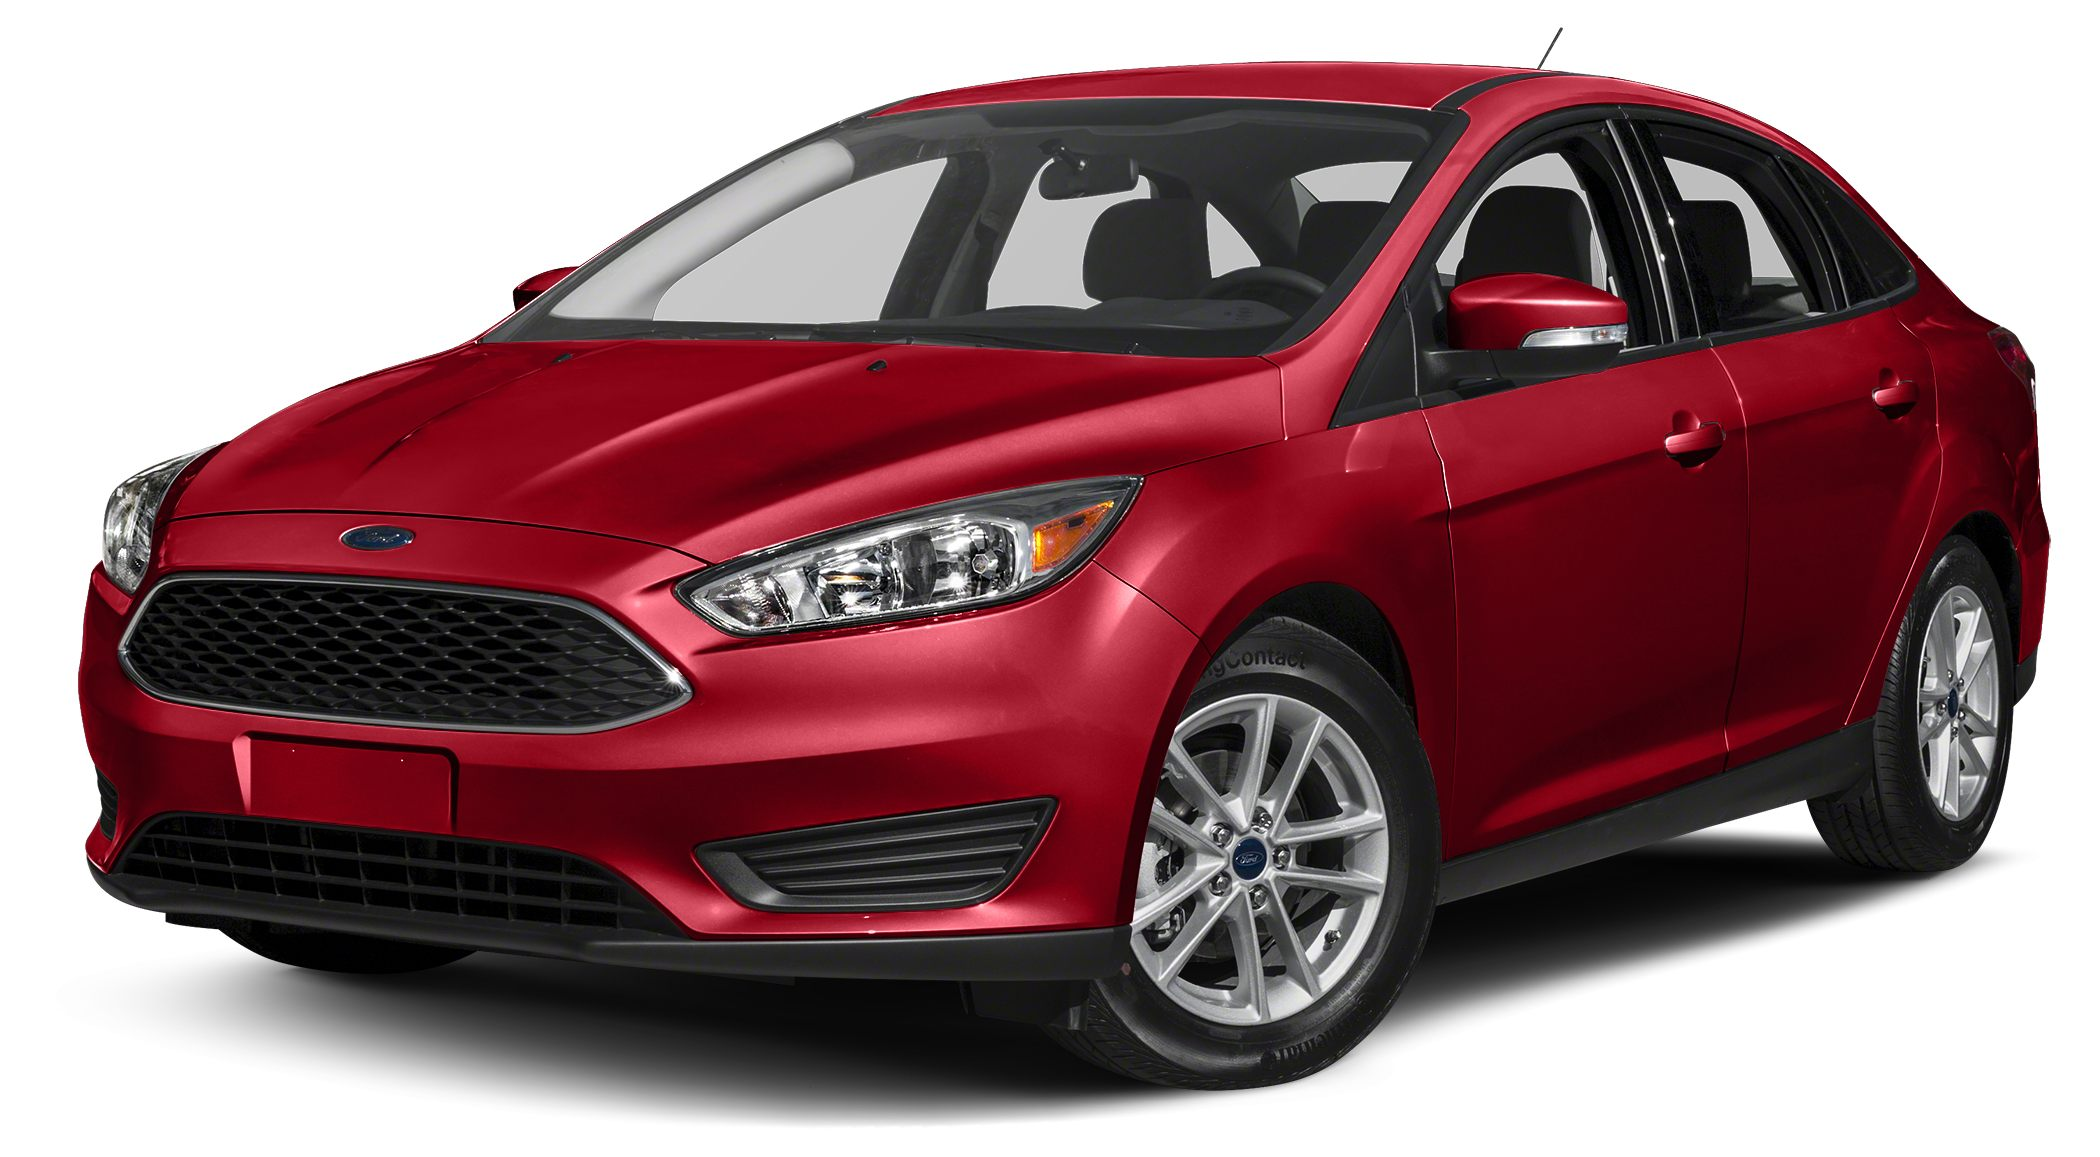 2017 Ford Focus SE 2017 Ford Focus SE 3826 HighwayCity MPGPrice includes 750 - Retail Customer